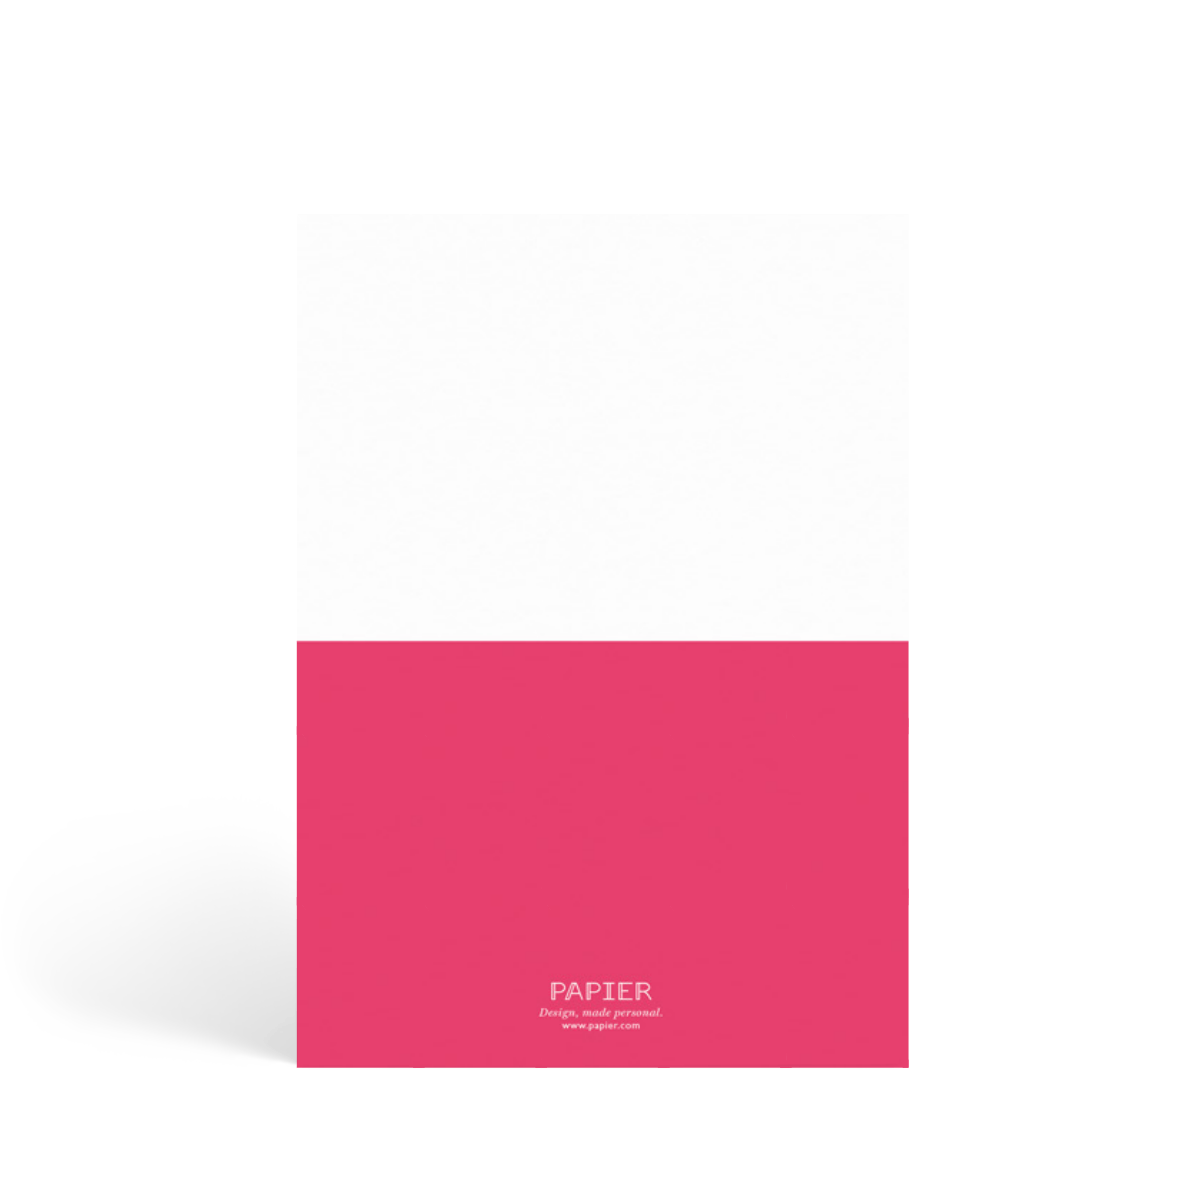 Https%3a%2f%2fwww.papier.com%2fproduct image%2f72234%2f5%2fdemi hot pink 17026 back 1556053337.png?ixlib=rb 1.1